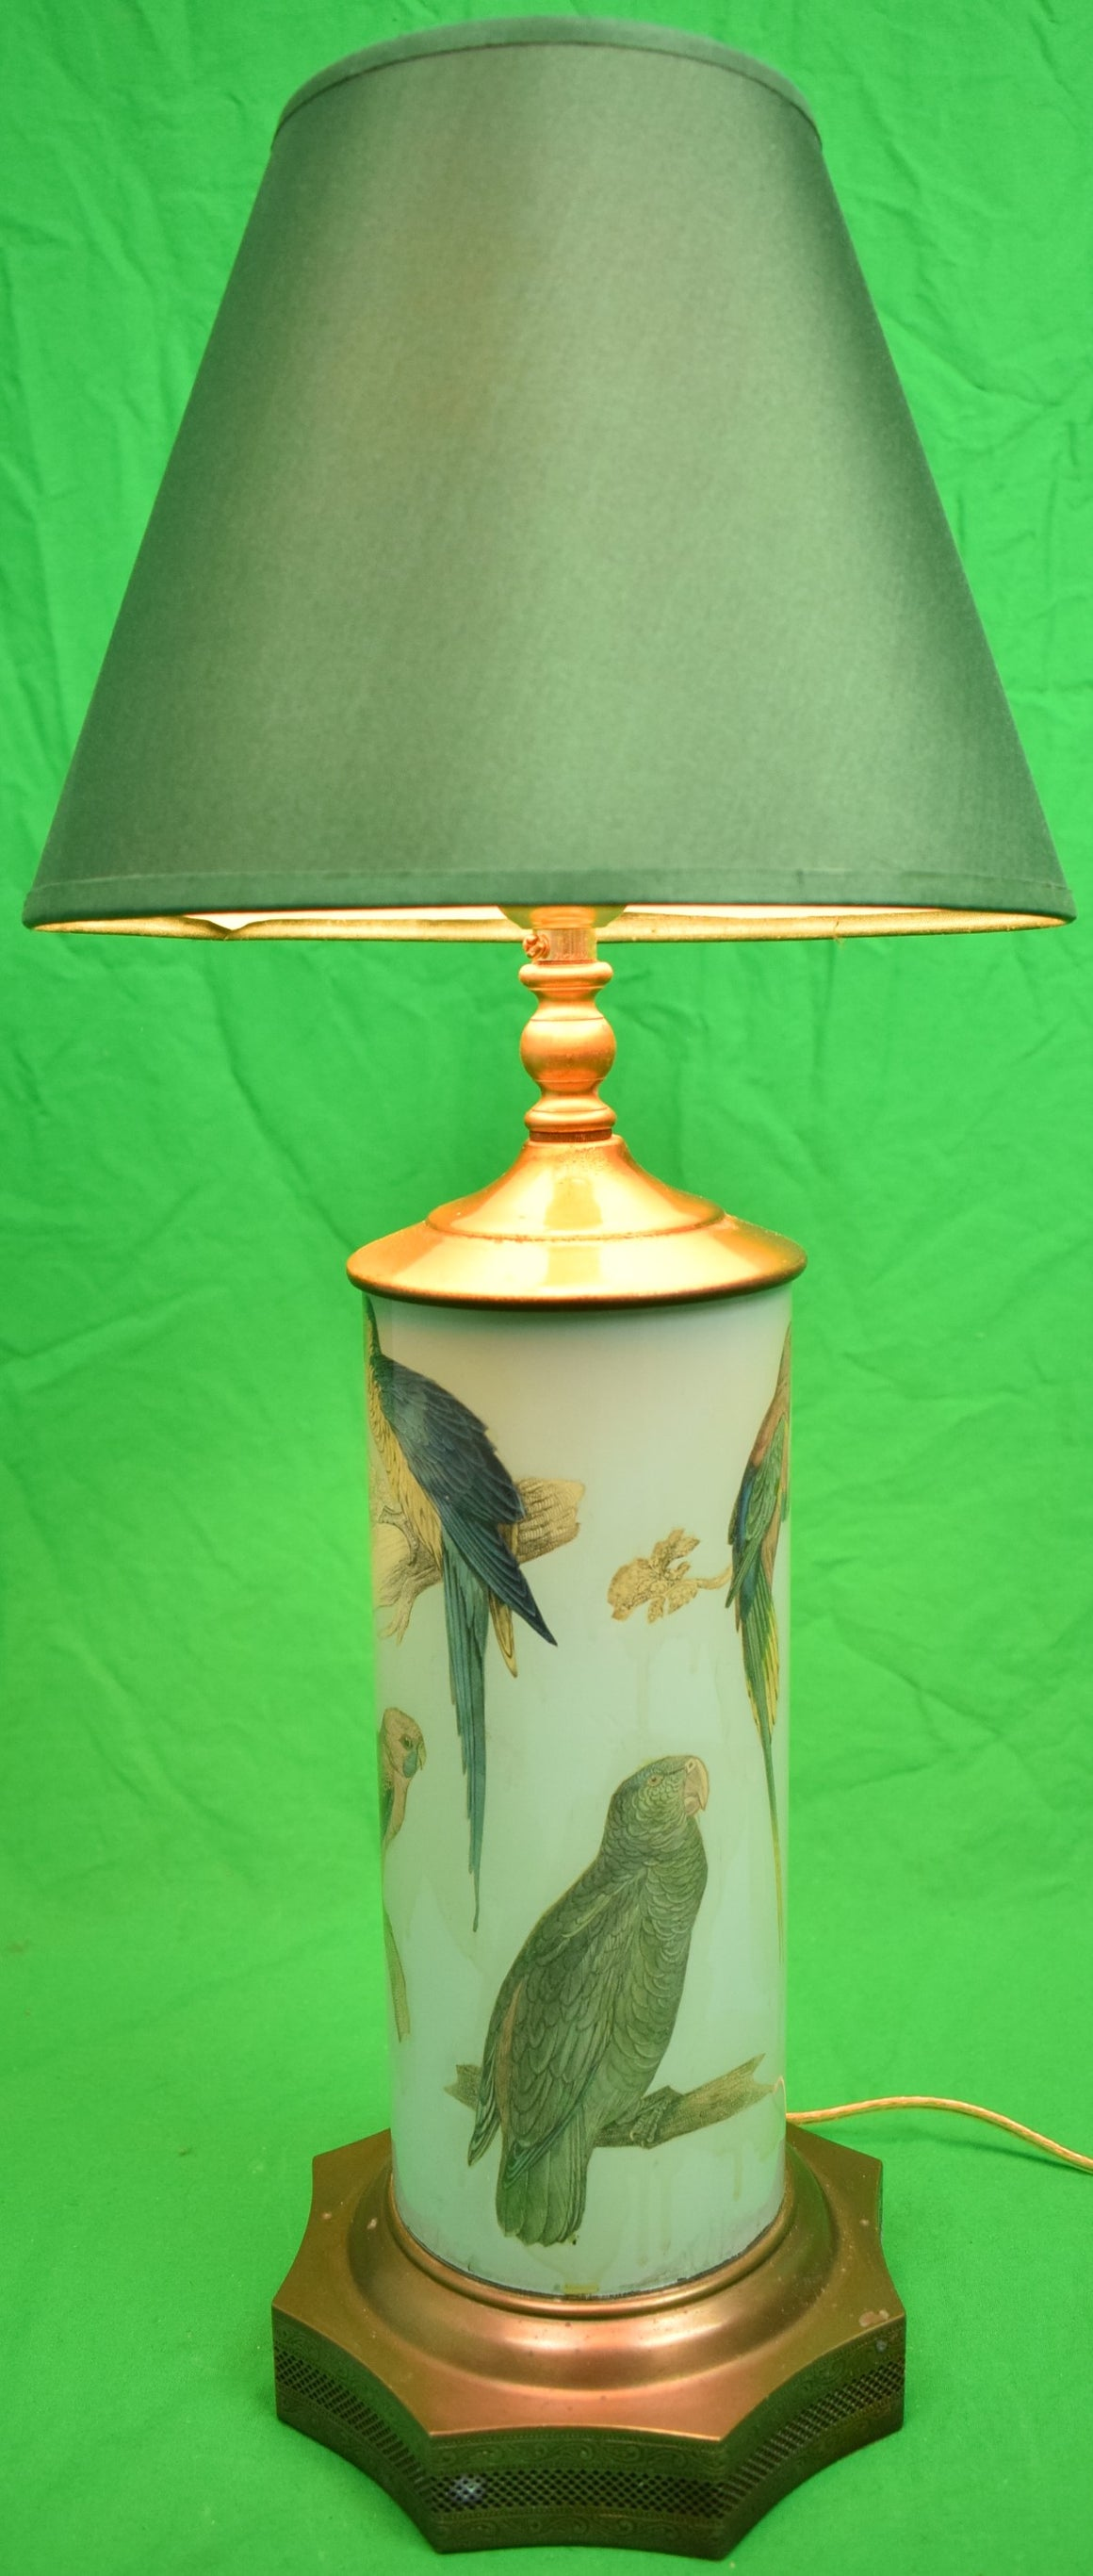 Blue Parrots Decoupage Lamp